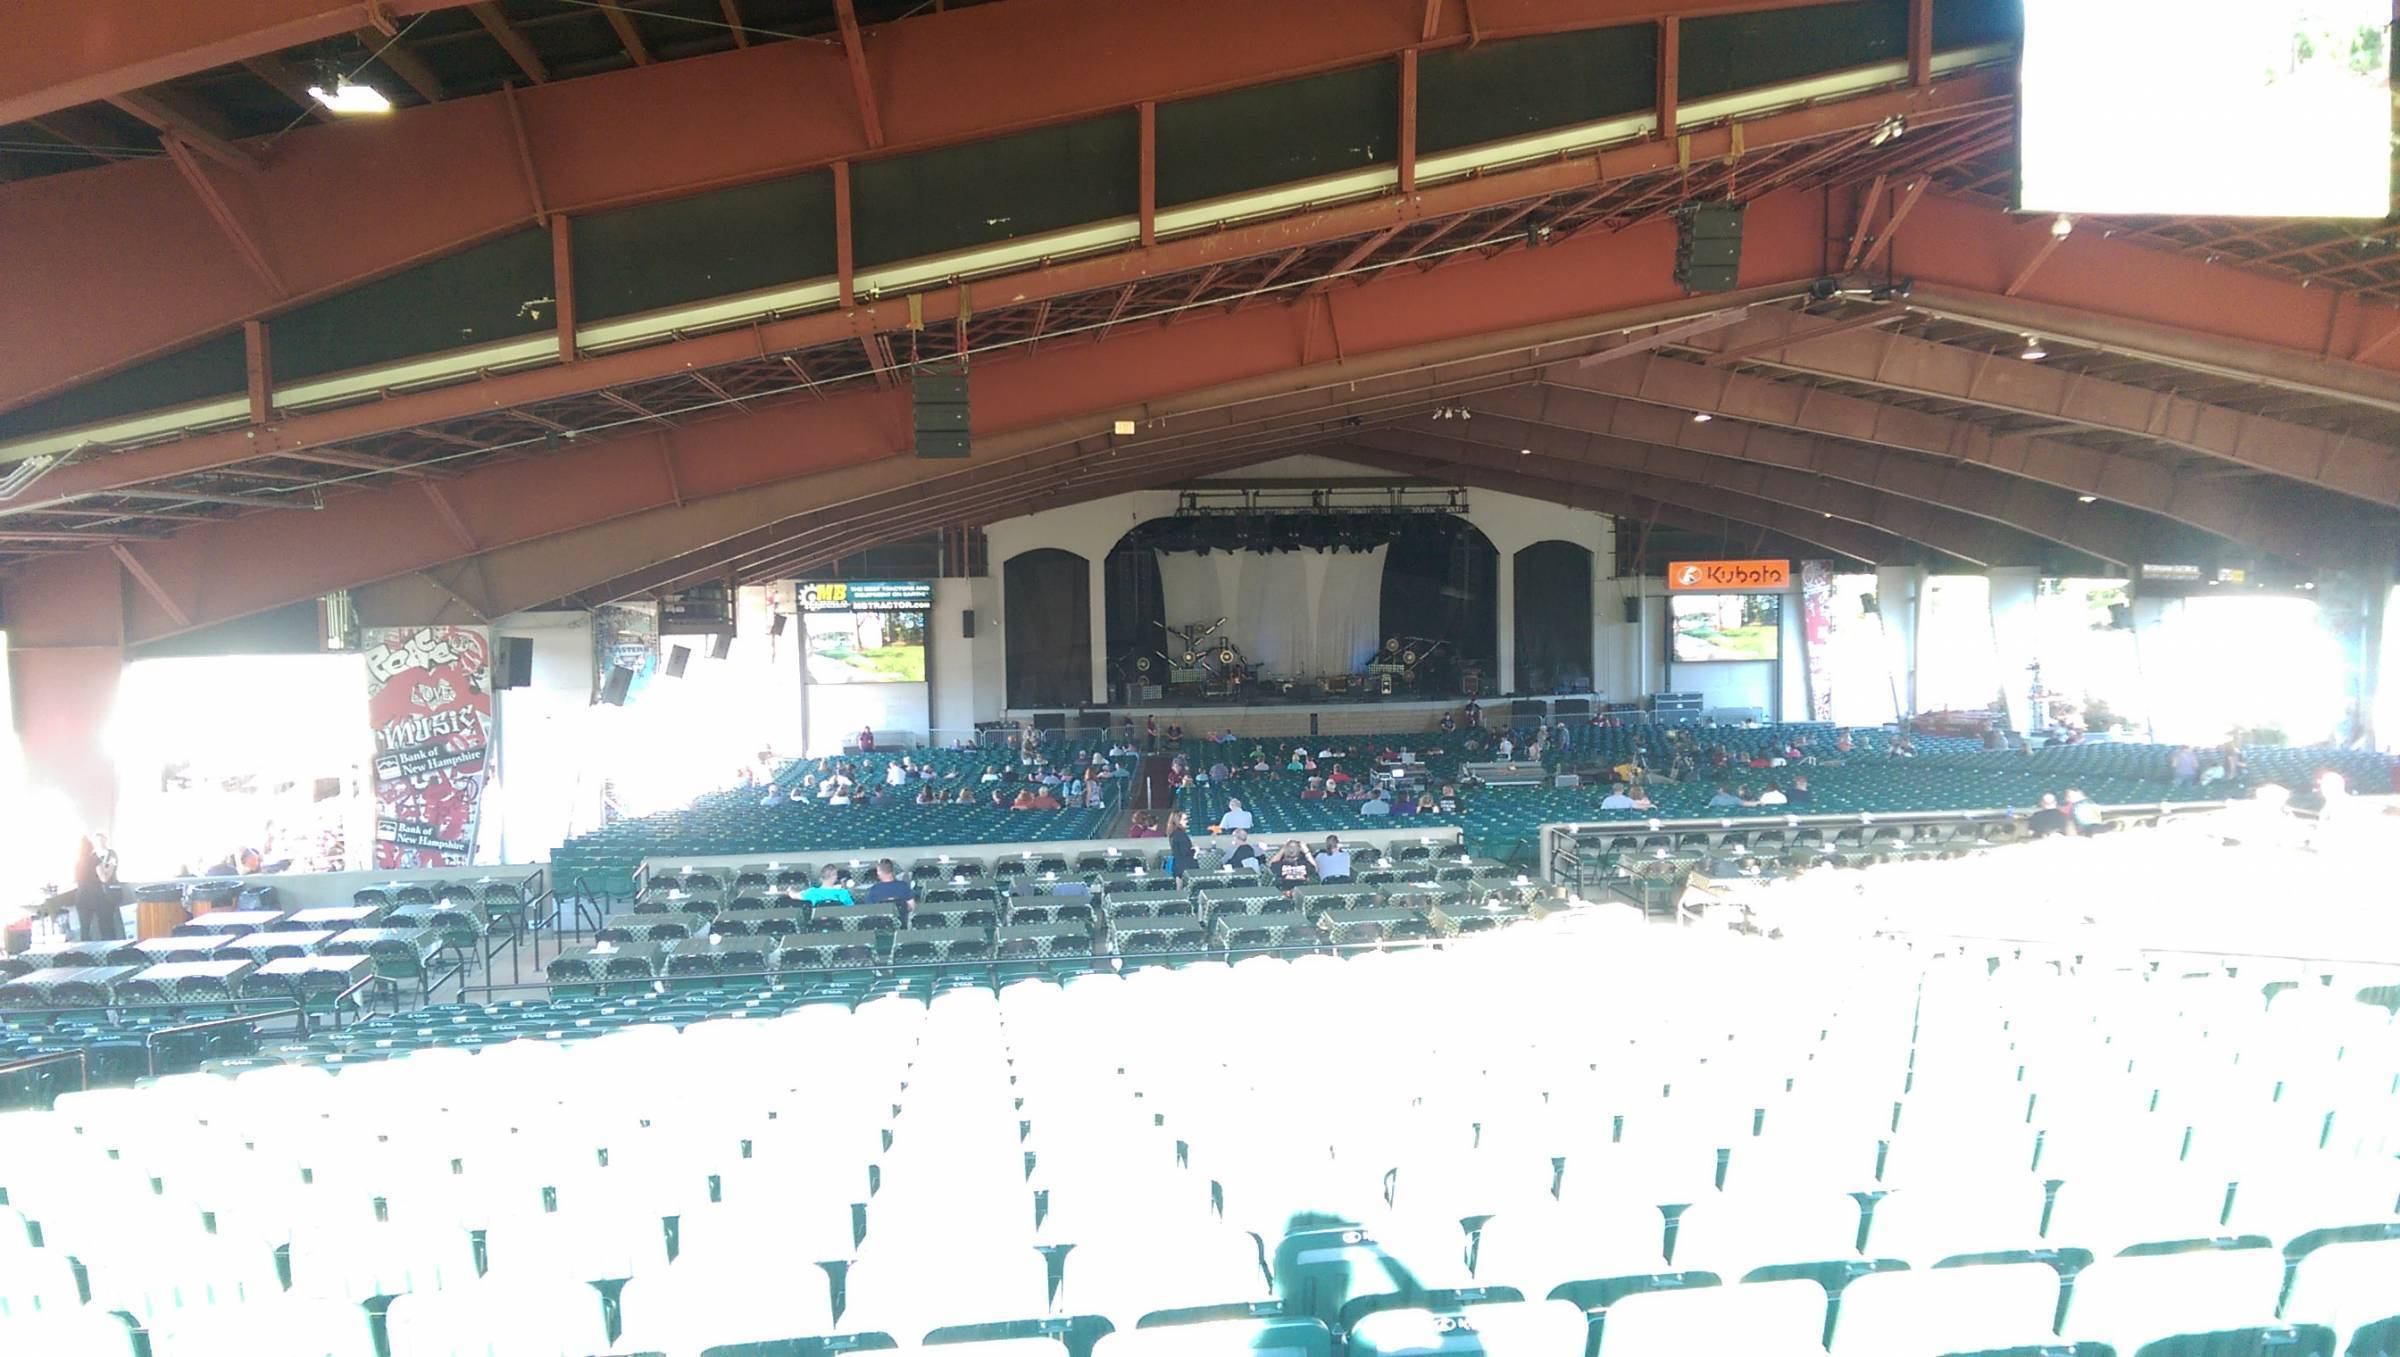 Concert Seat View For Bank Of New Hampshire Pavilion Meadowbrook Section 3b